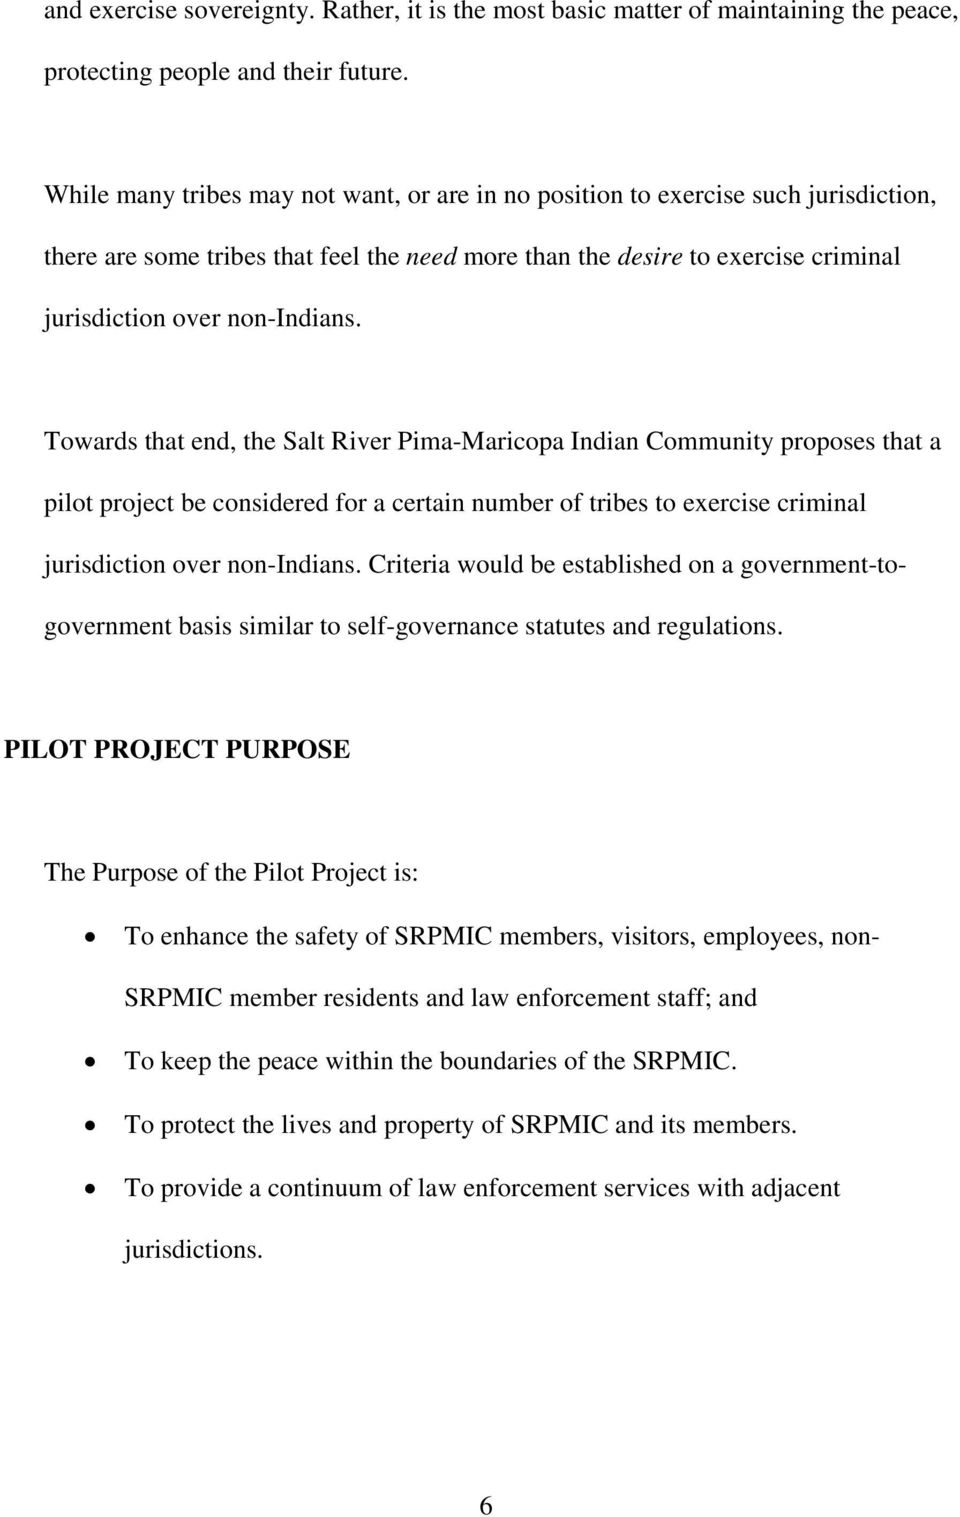 Towards that end, the Salt River Pima-Maricopa Indian Community proposes that a pilot project be considered for a certain number of tribes to exercise criminal jurisdiction over non-indians.